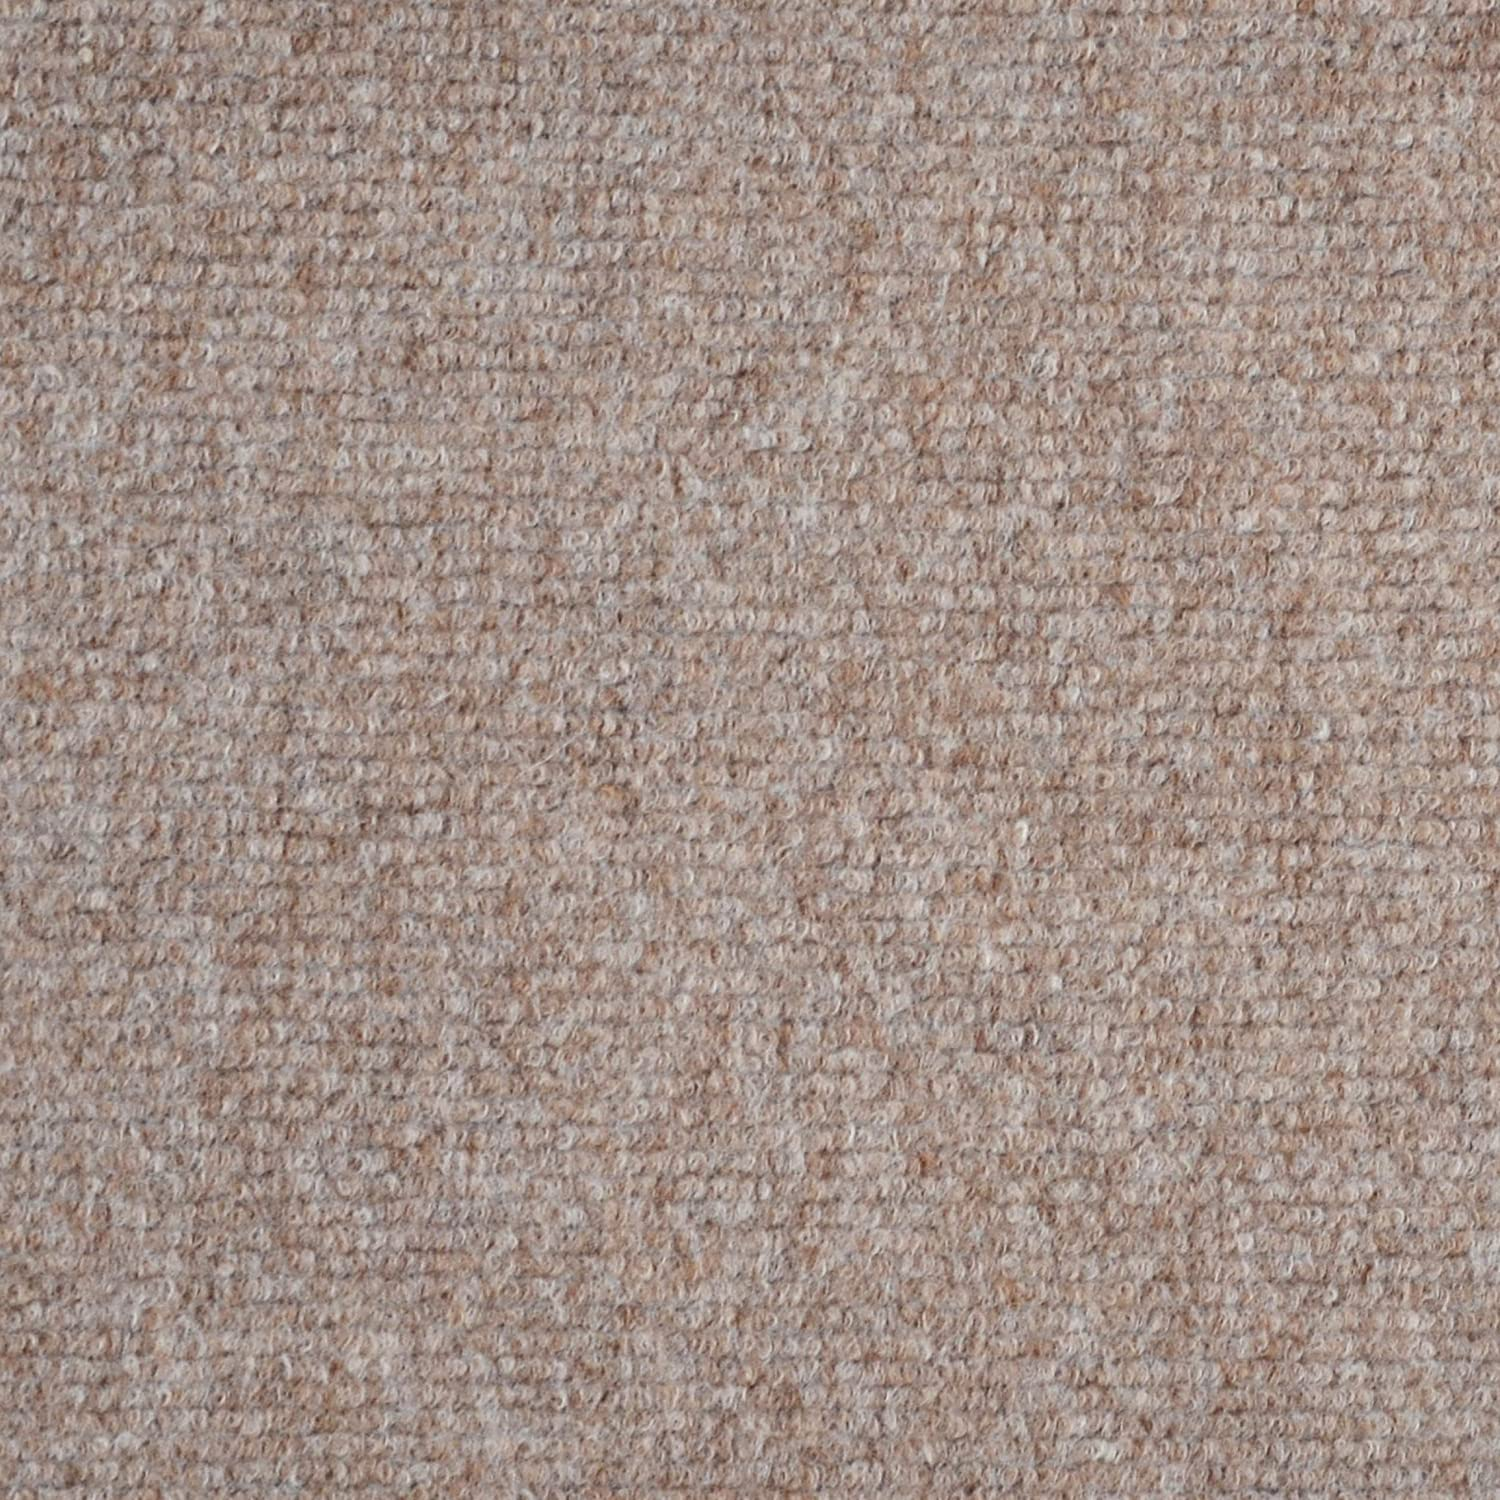 Amazon.com : Indoor/Outdoor Carpet/Rug   Beige   6u0027 X 8u0027 With Marine  Backing : Area Rugs : Garden U0026 Outdoor